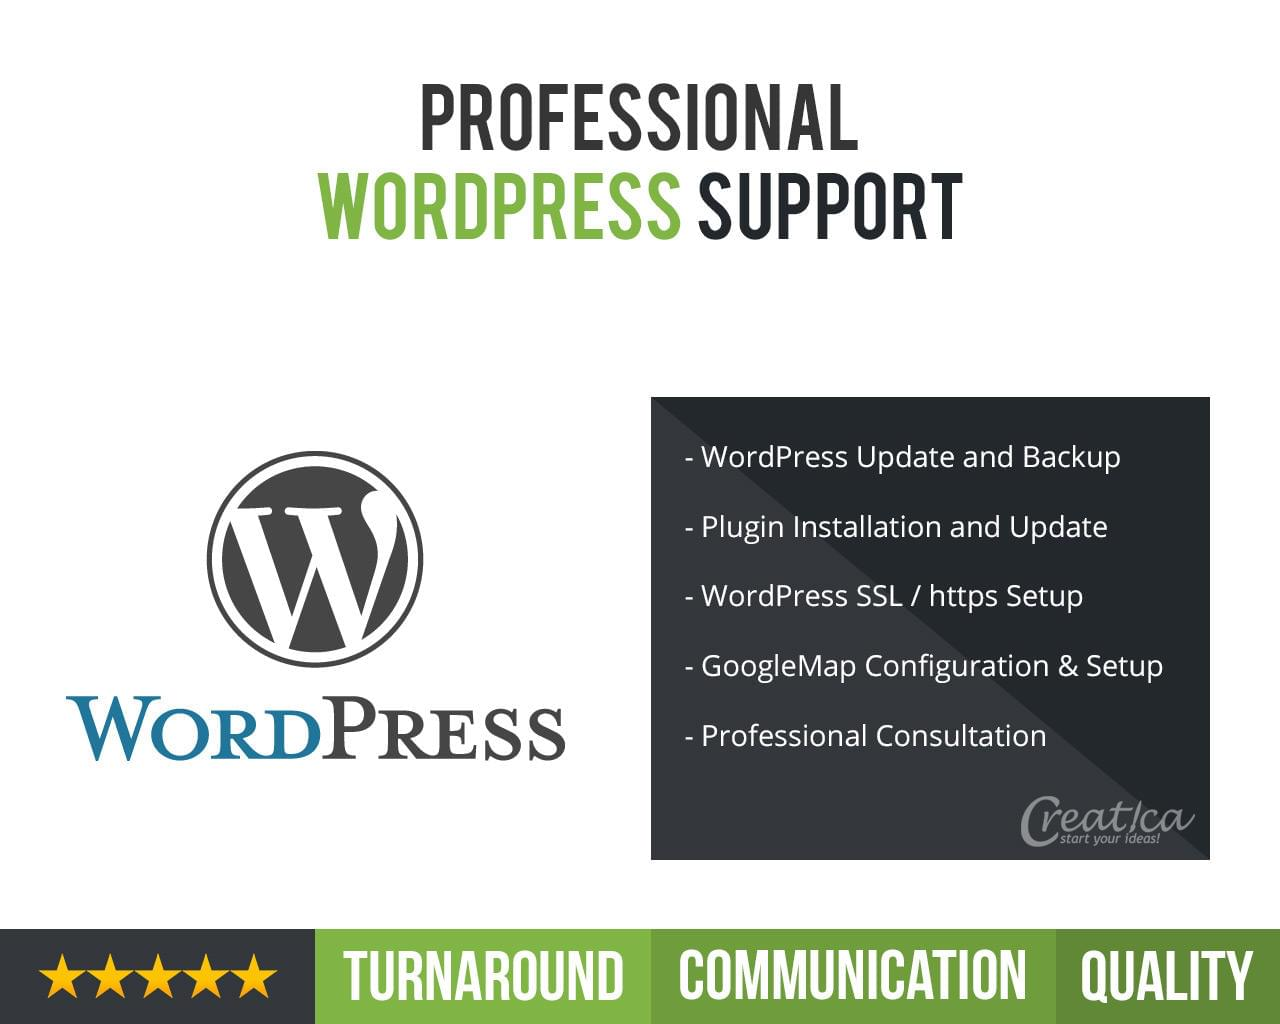 Professional Wordpress Support by CreaticaStudio - 113611